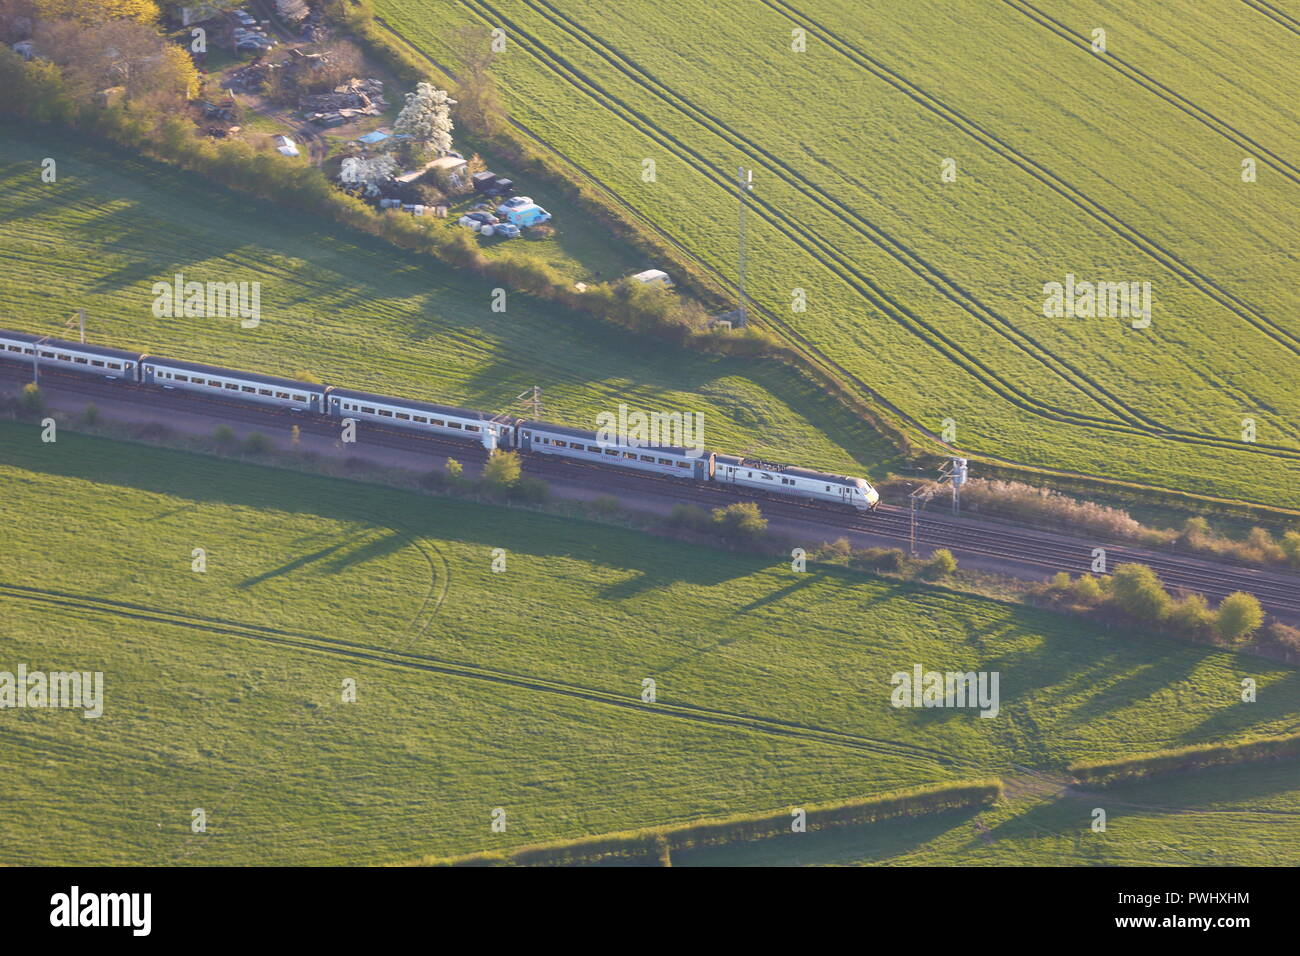 A train on the East Coast Main Line travelling to York - Stock Image